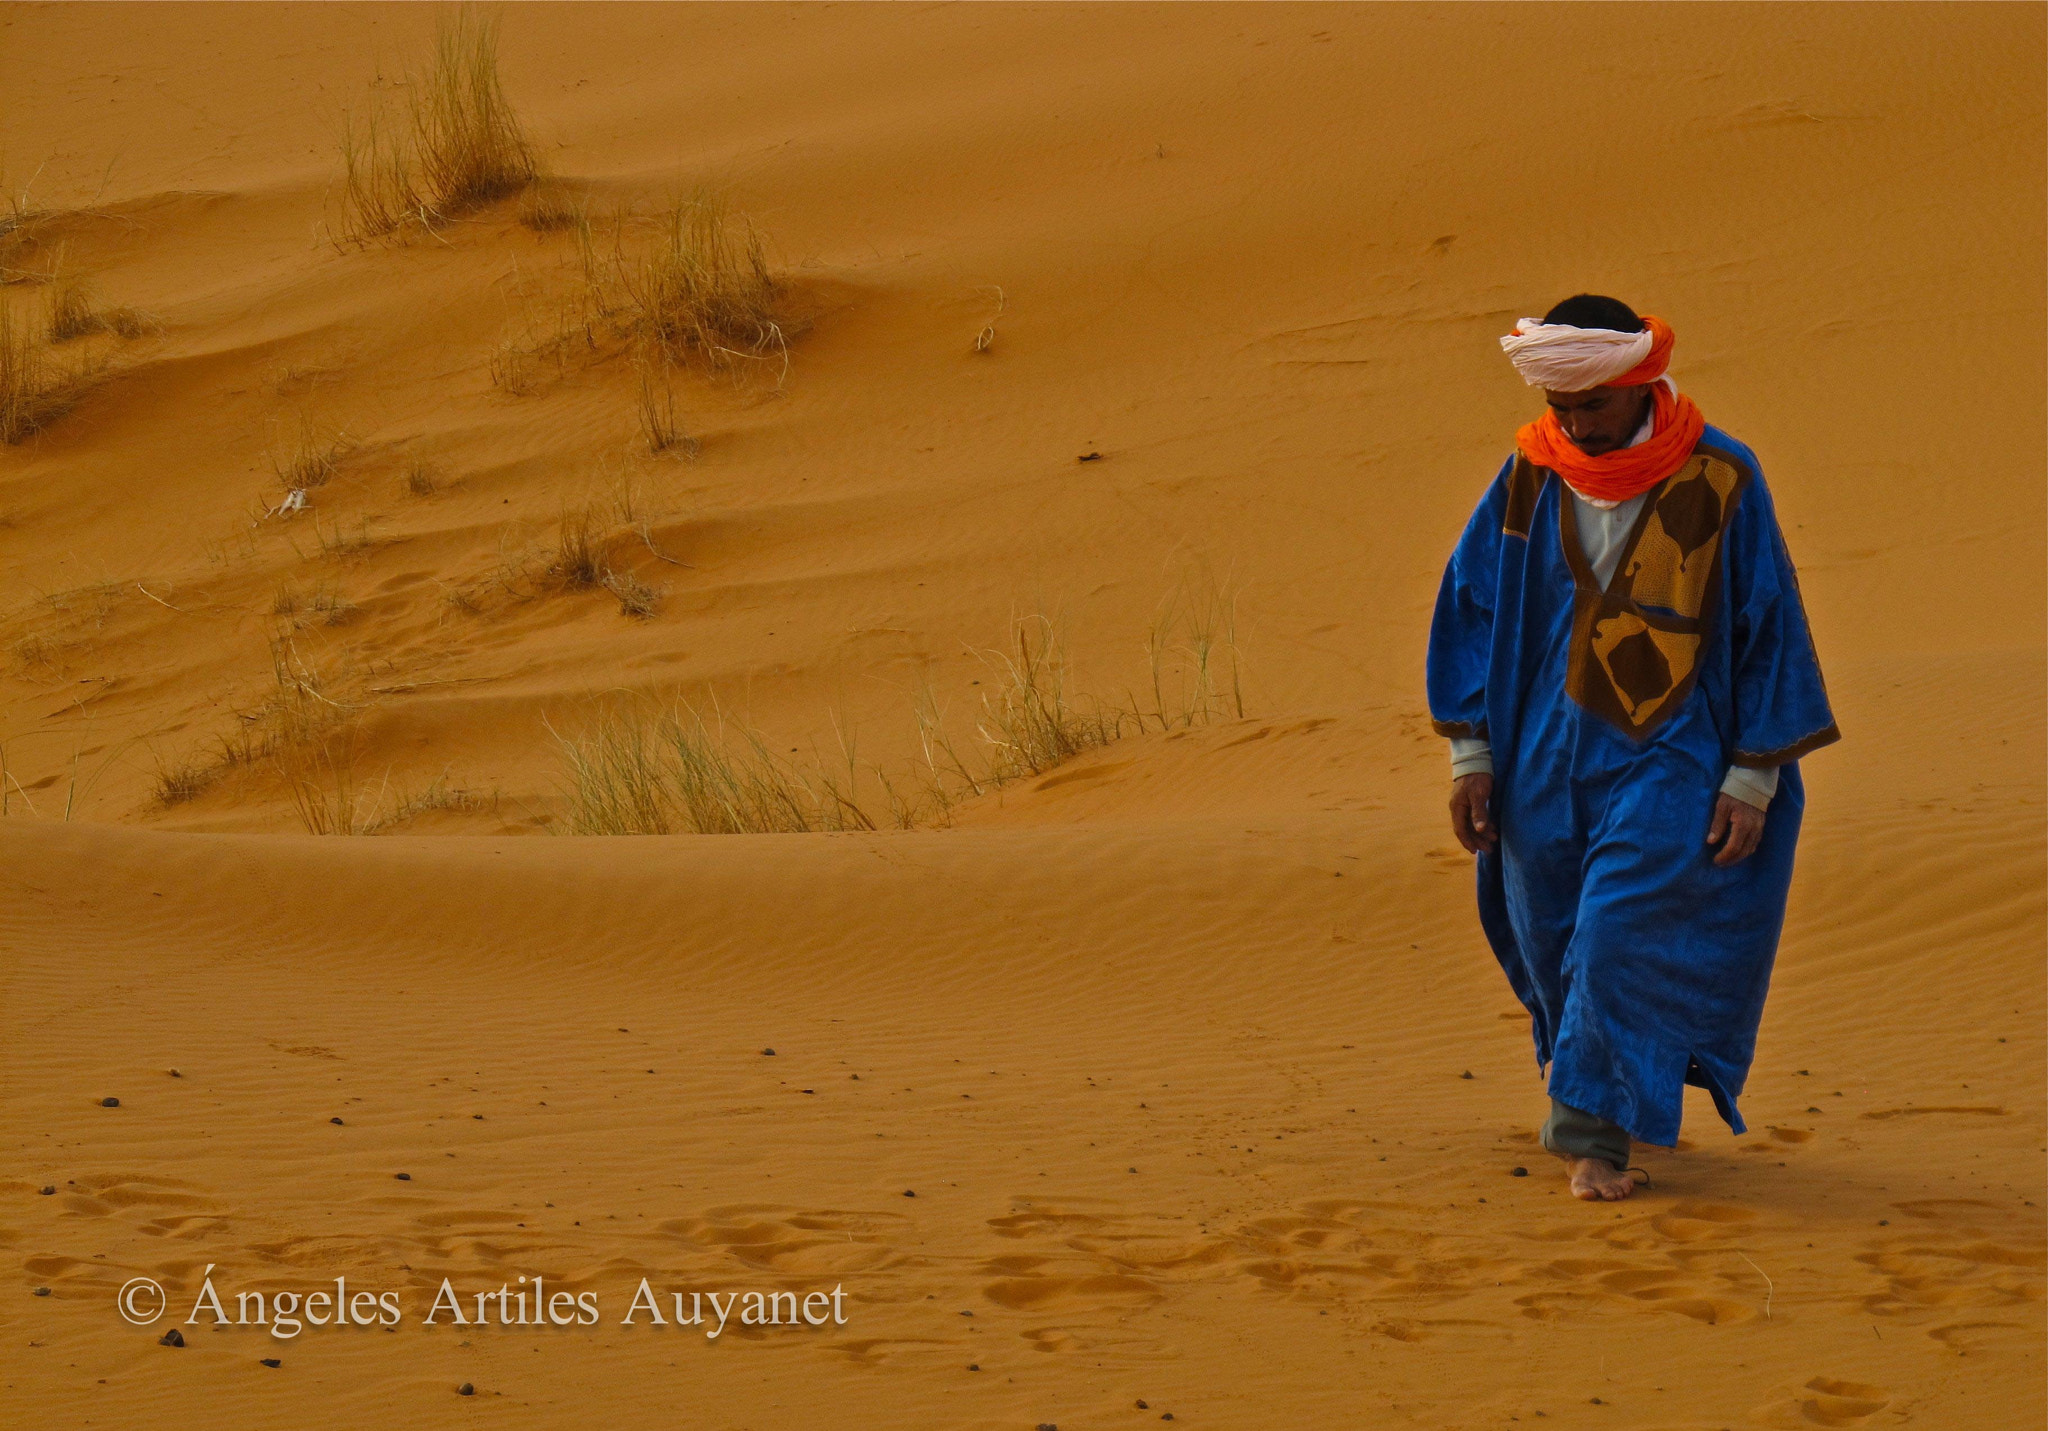 Photograph Looking for a beetle, Erg Chebbi Desert, Morocco by Ángeles A. Auyanet on 500px